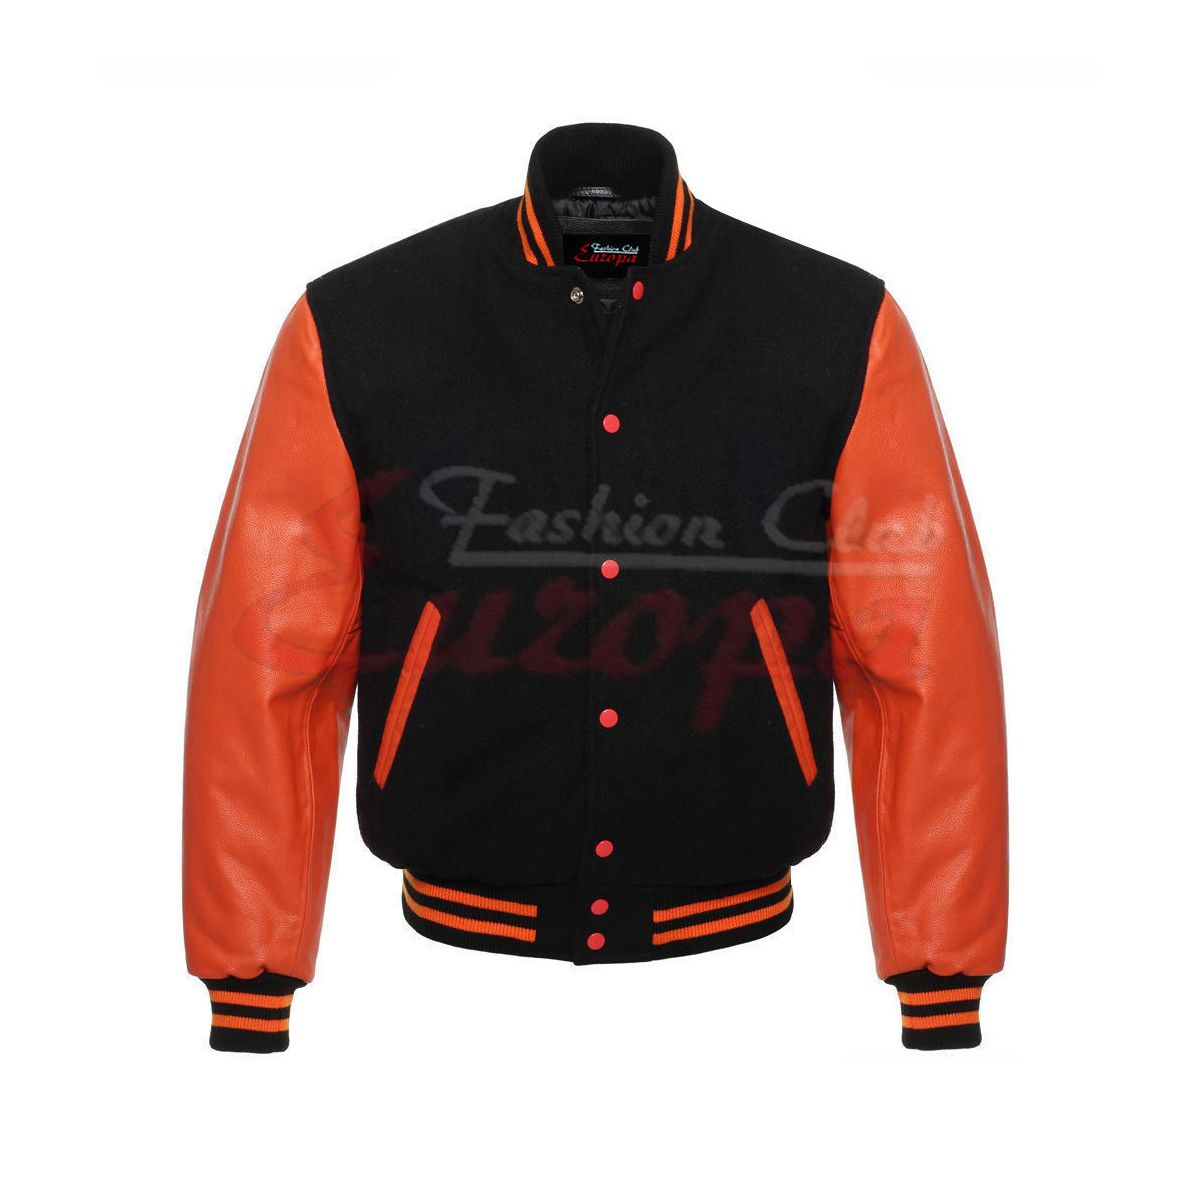 96e9c6343d0661 Black and Orange Varsity Letterman Jacket for Men (Sale)